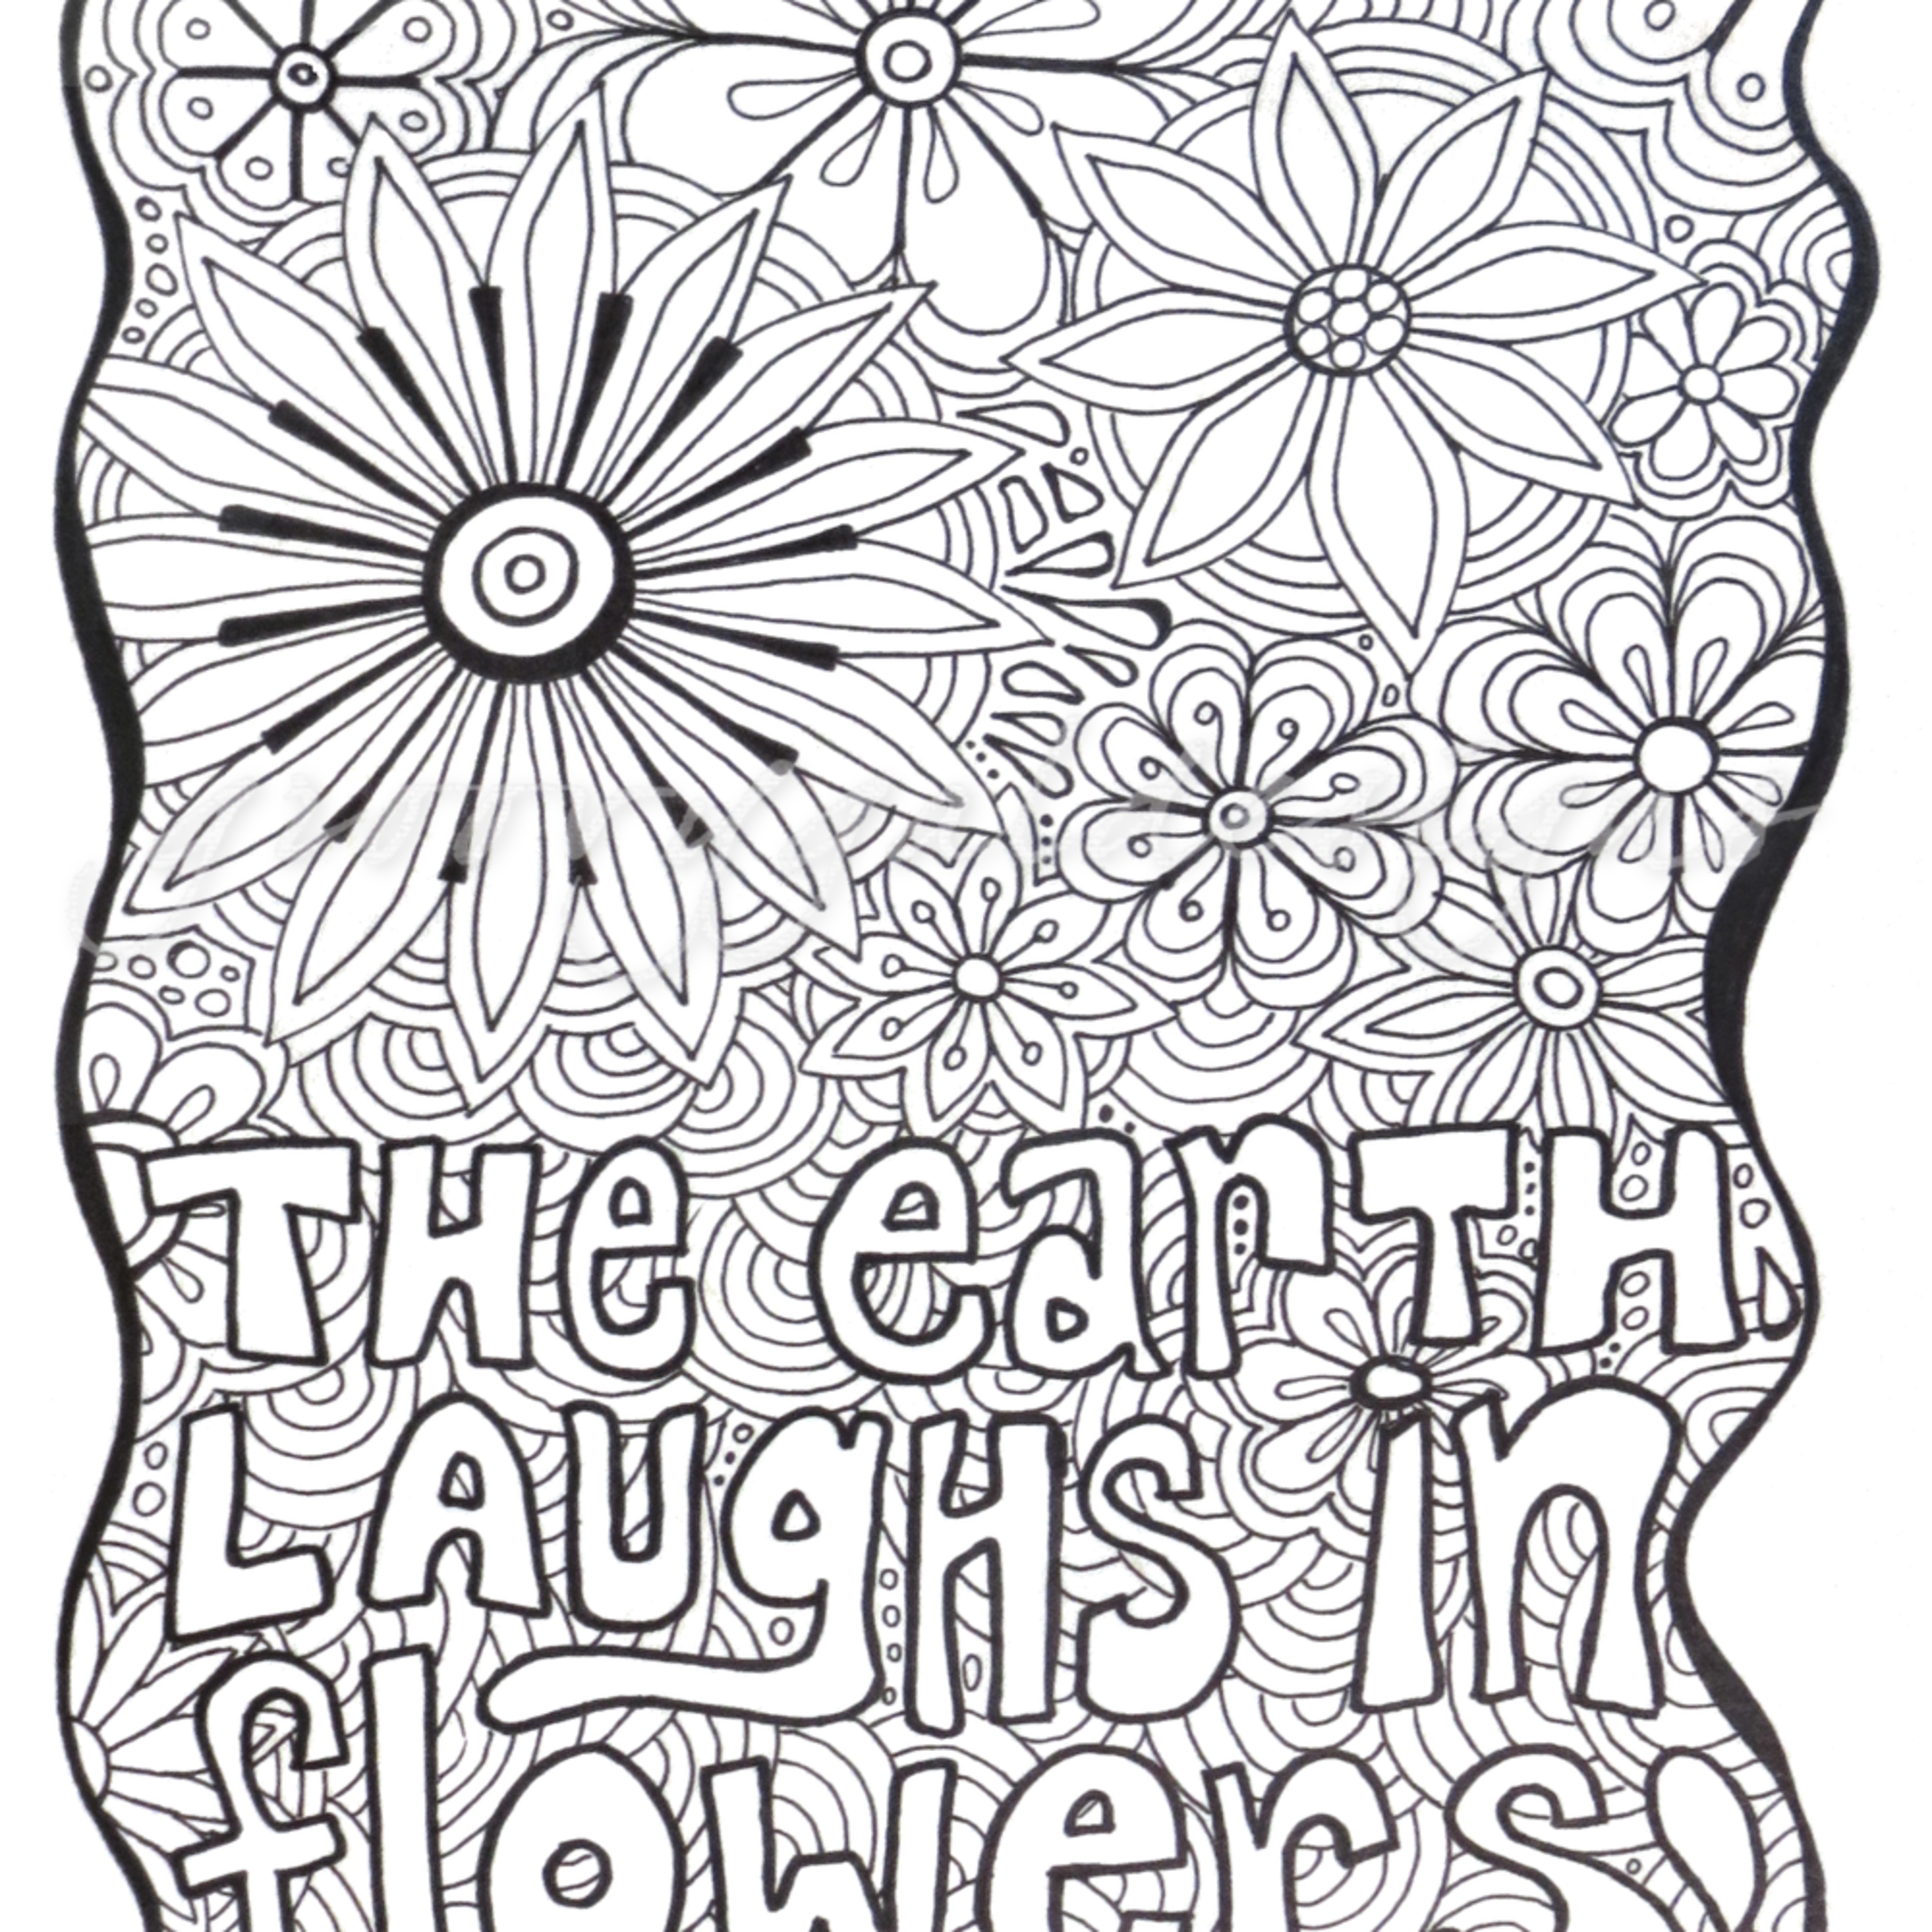 Earth laughs in flowers color it ao8nmd